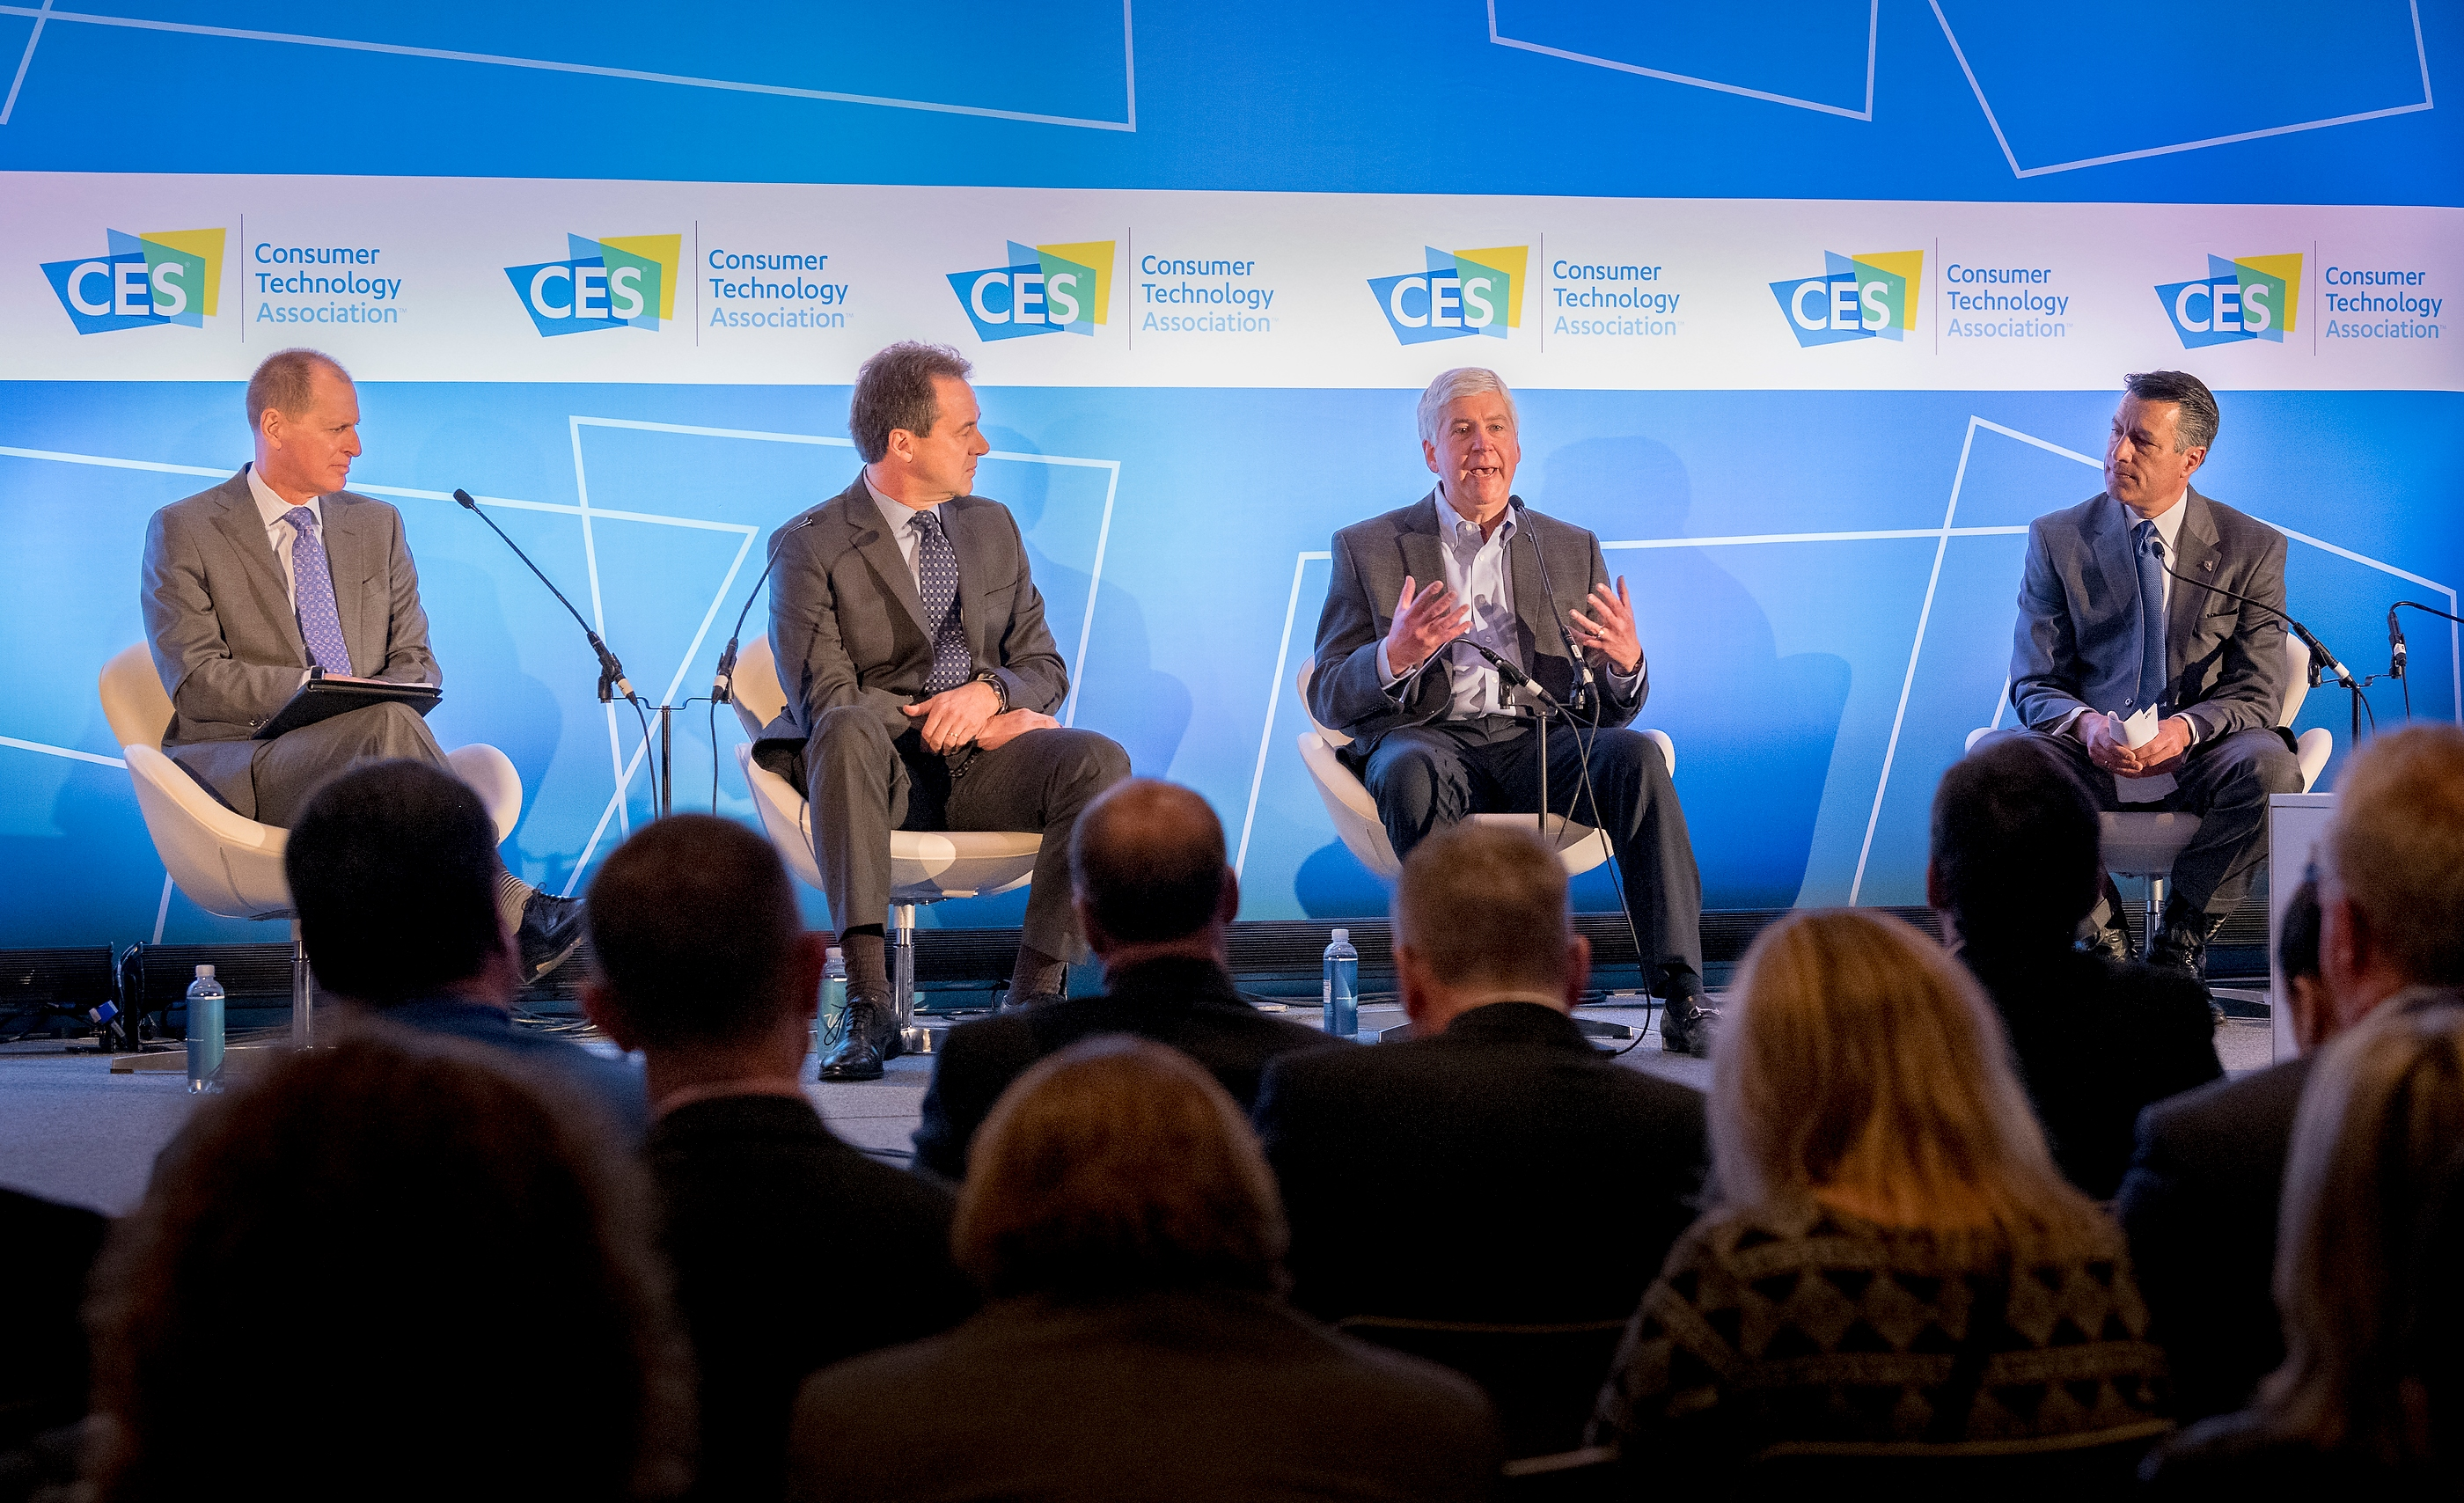 "Gary Shapiro, from left, president /CEO of the Consumer Technology Association, moderates a panel discussion ""How States Can Become Innovation Leaders"" with Montana Governor Steve Bullock, Michigan Governor Rick Snyder, and Nevada Governor Brian Sandoval during CES at the Las Vegas Convention Center on Thursday, Jan. 11, 2018. CREDIT: Mark Damon/Las Vegas News Bureau"